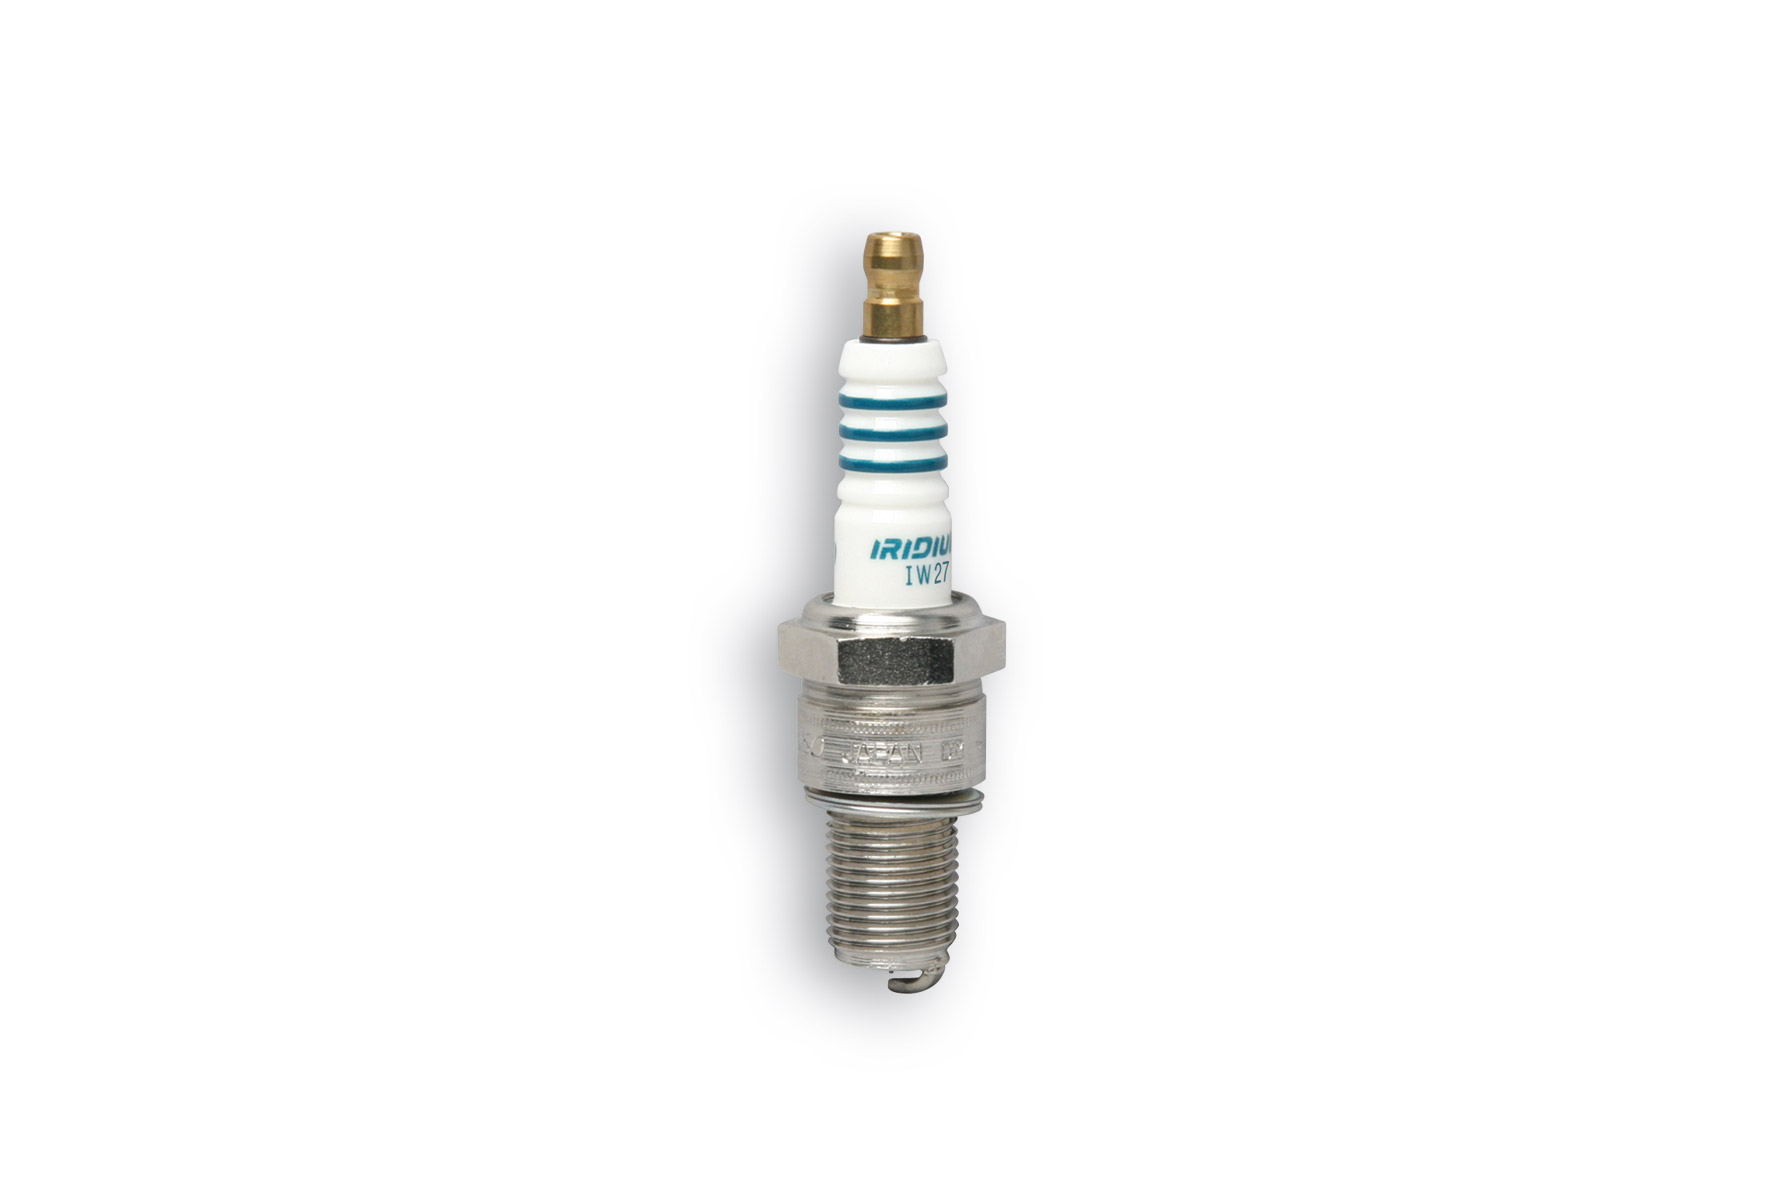 SPARK PLUG DENSO IRIDIUM IW 27 (thread M14 - 19 mm)